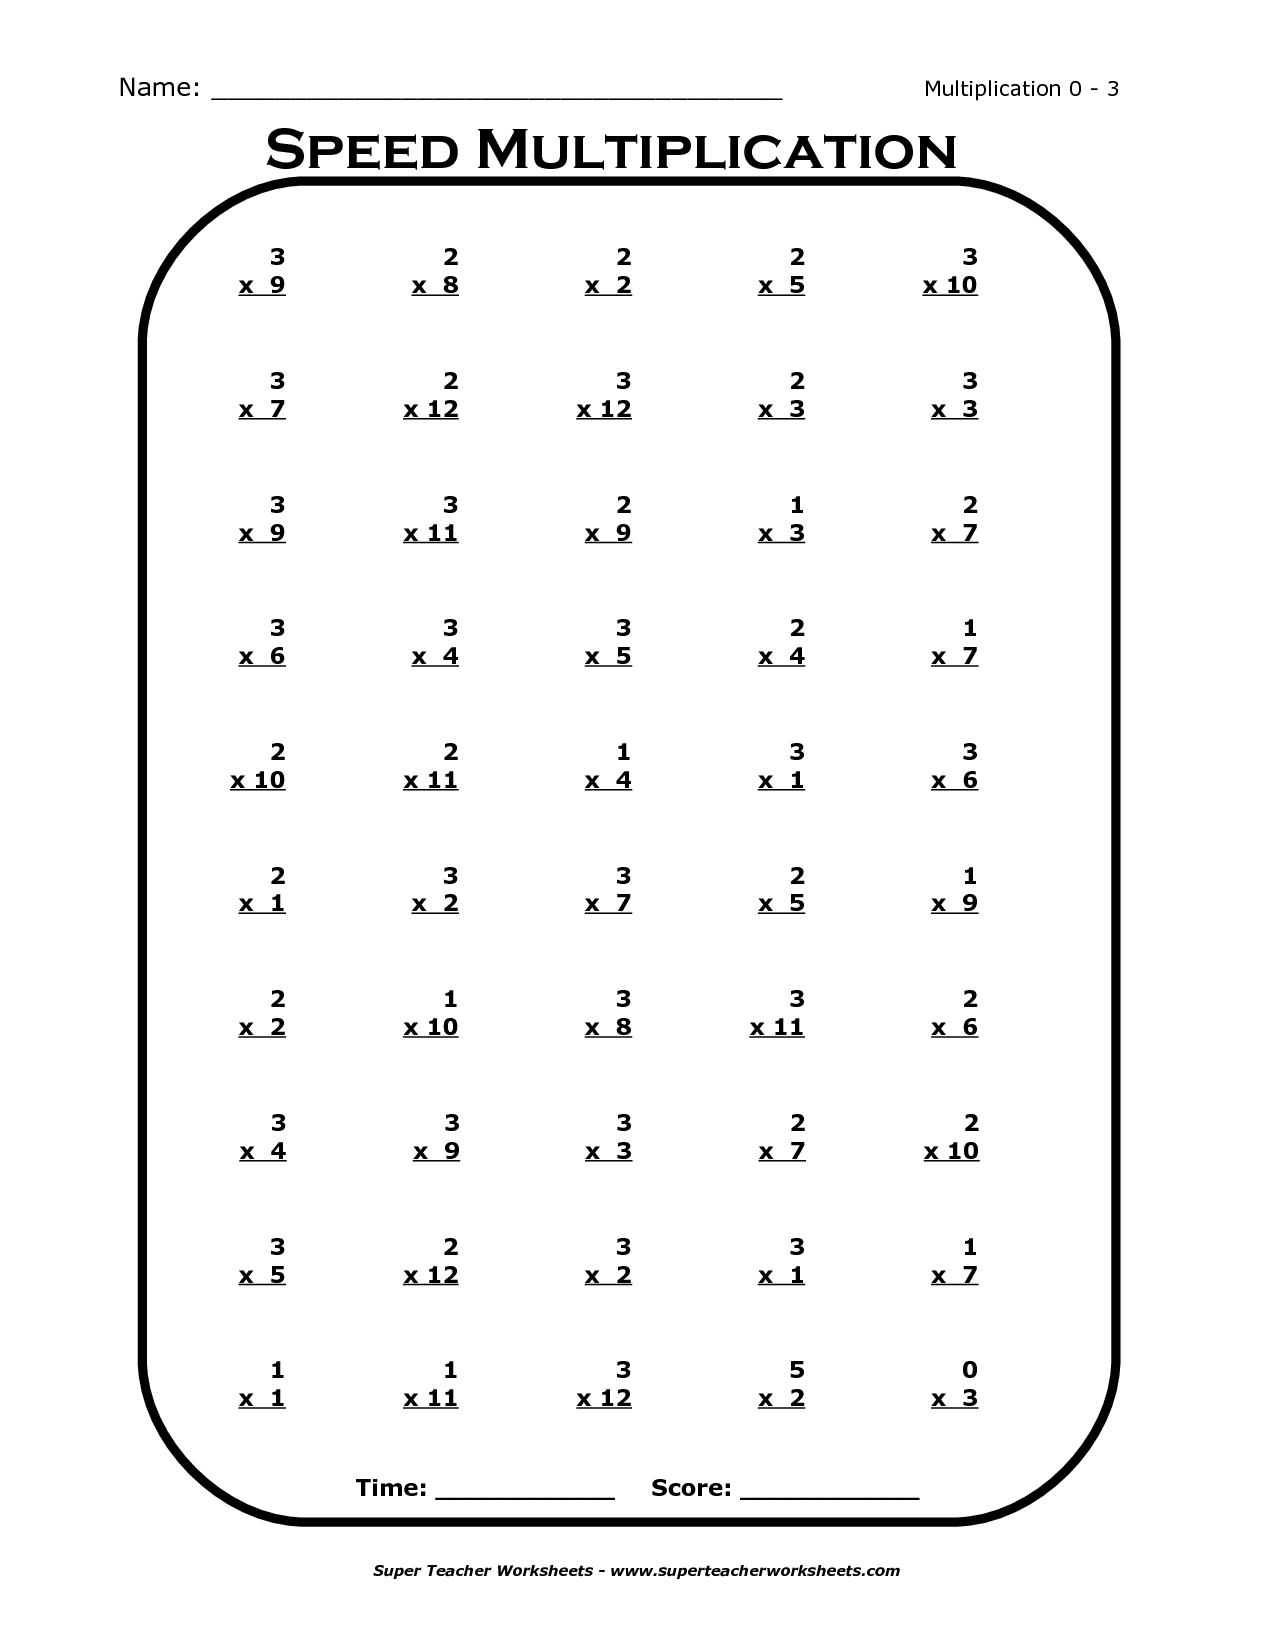 Basic Multiplication Table Worksheets Teacher Worksheets Math Times Tables Worksheets Super Teacher Worksheets